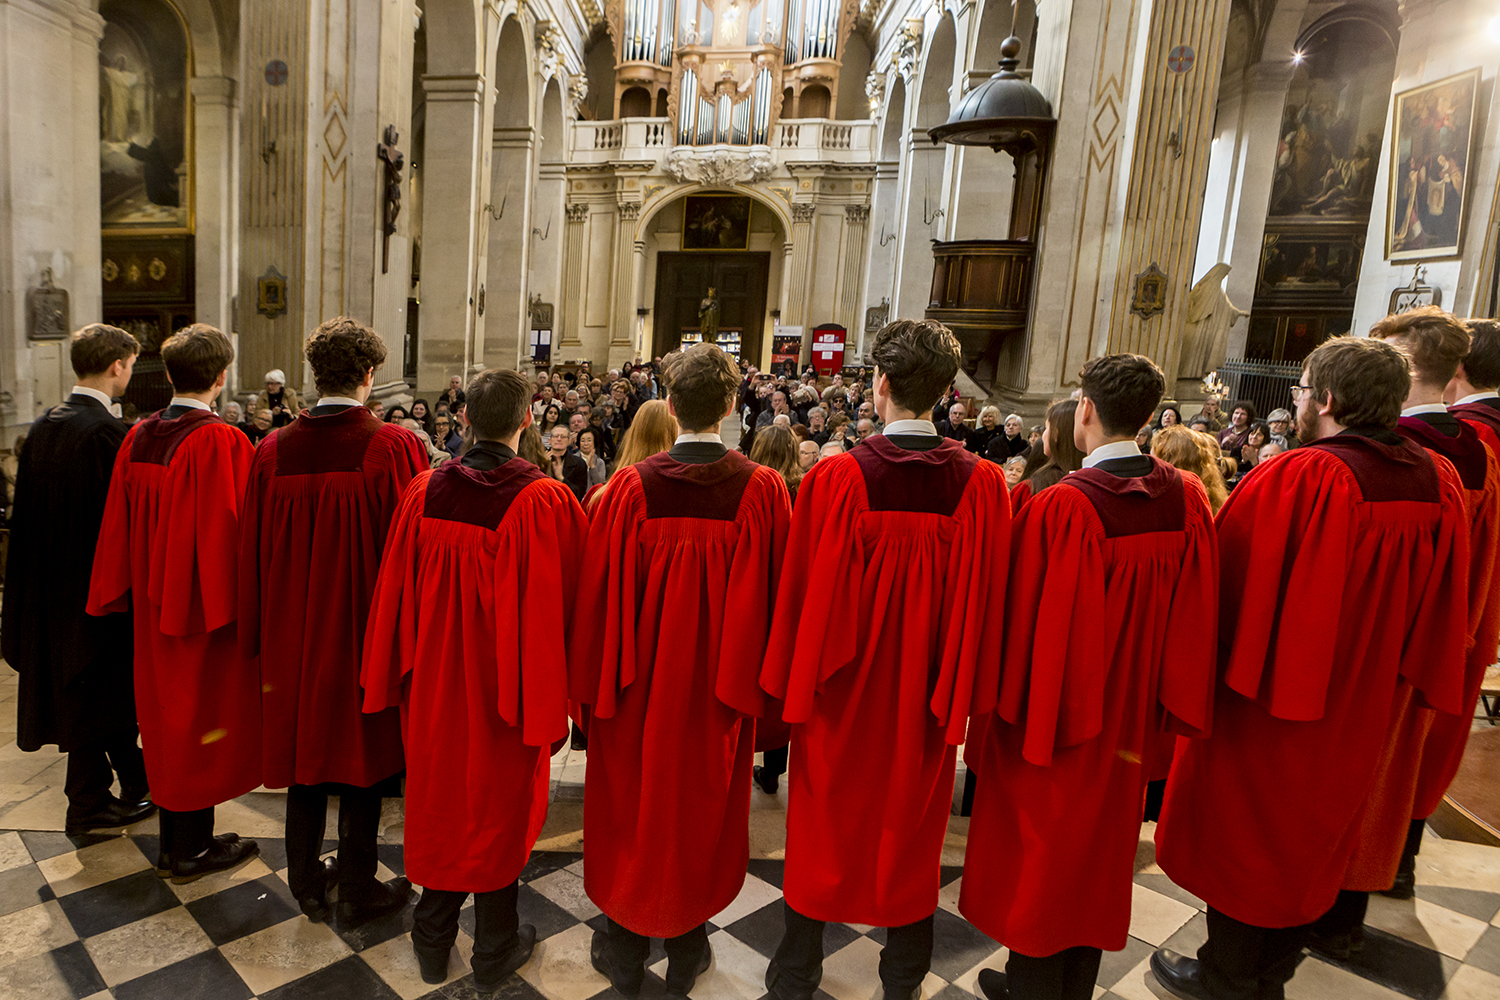 Choir in red cassocks performing to full church